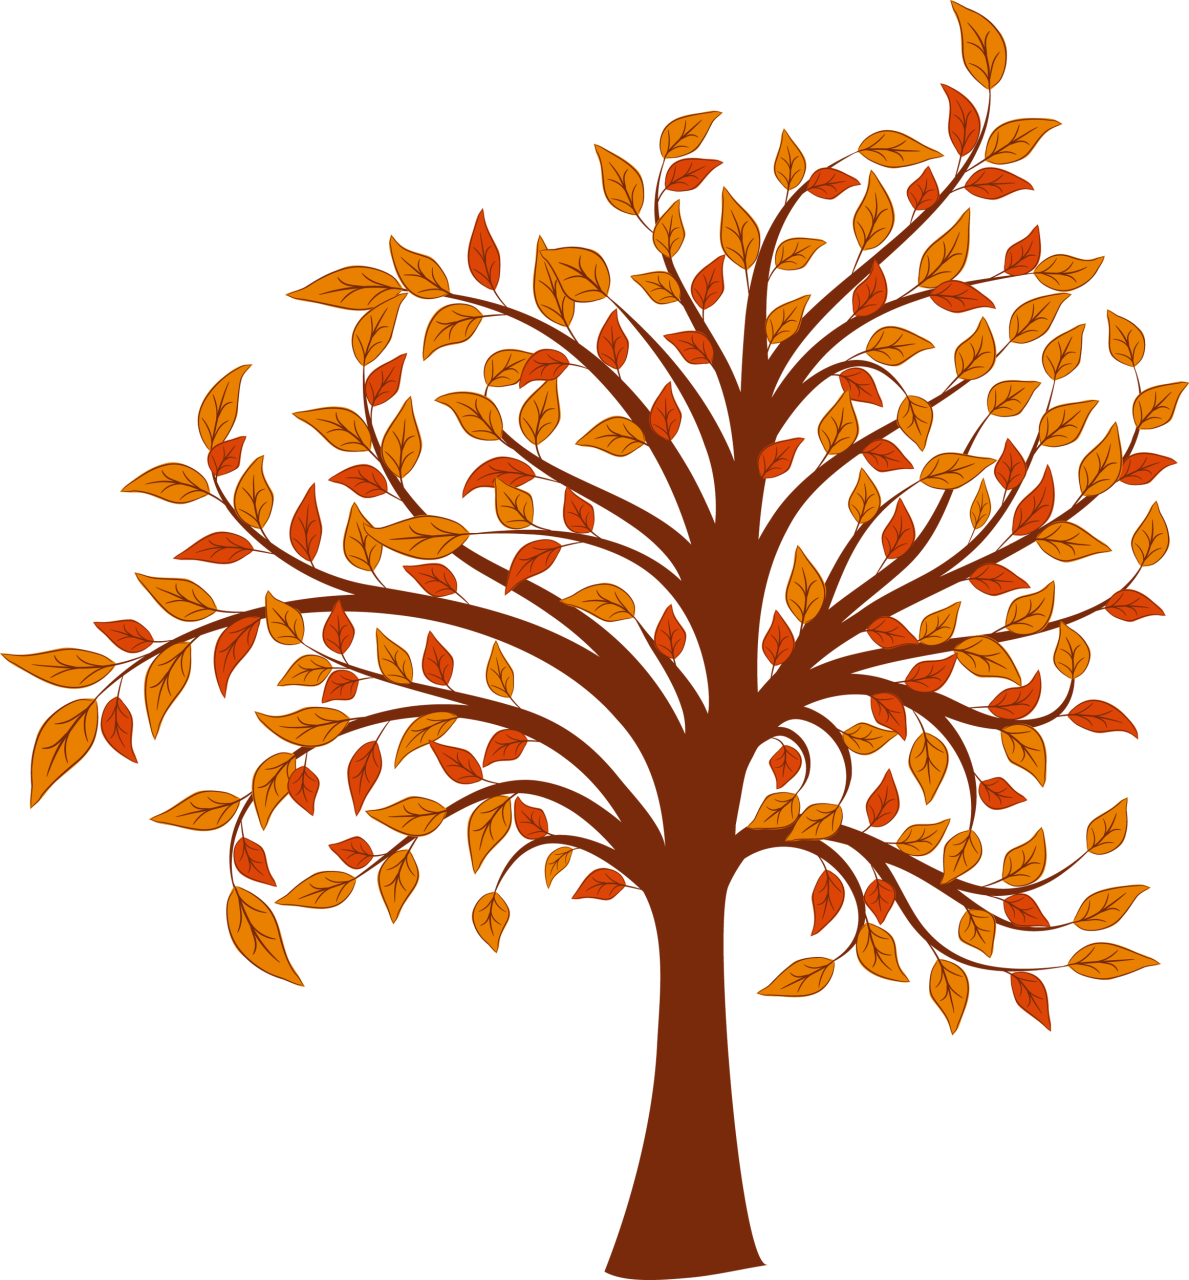 That Others Image Has Been Removed At Th-That Others image has been removed at the request of its copyright owner. fall tree clipart. Free Clipart Of Fall Trees-16